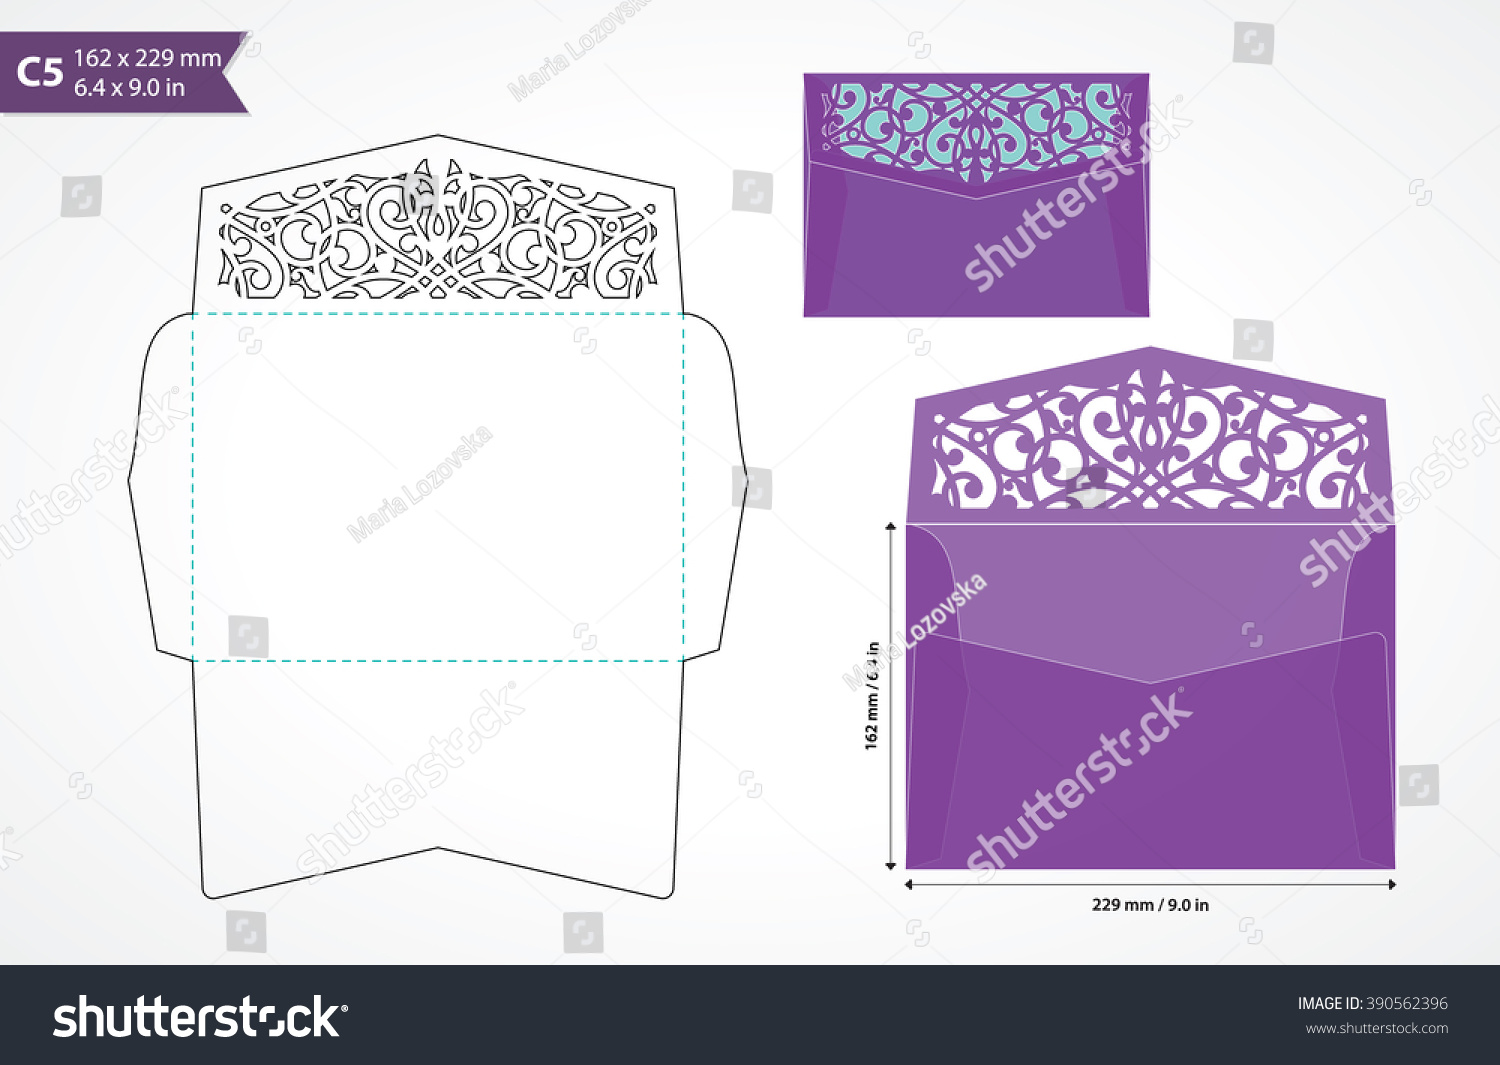 Standard C5 Size Envelope Template With Decorative Flap To Hold A5 Card Die Cut